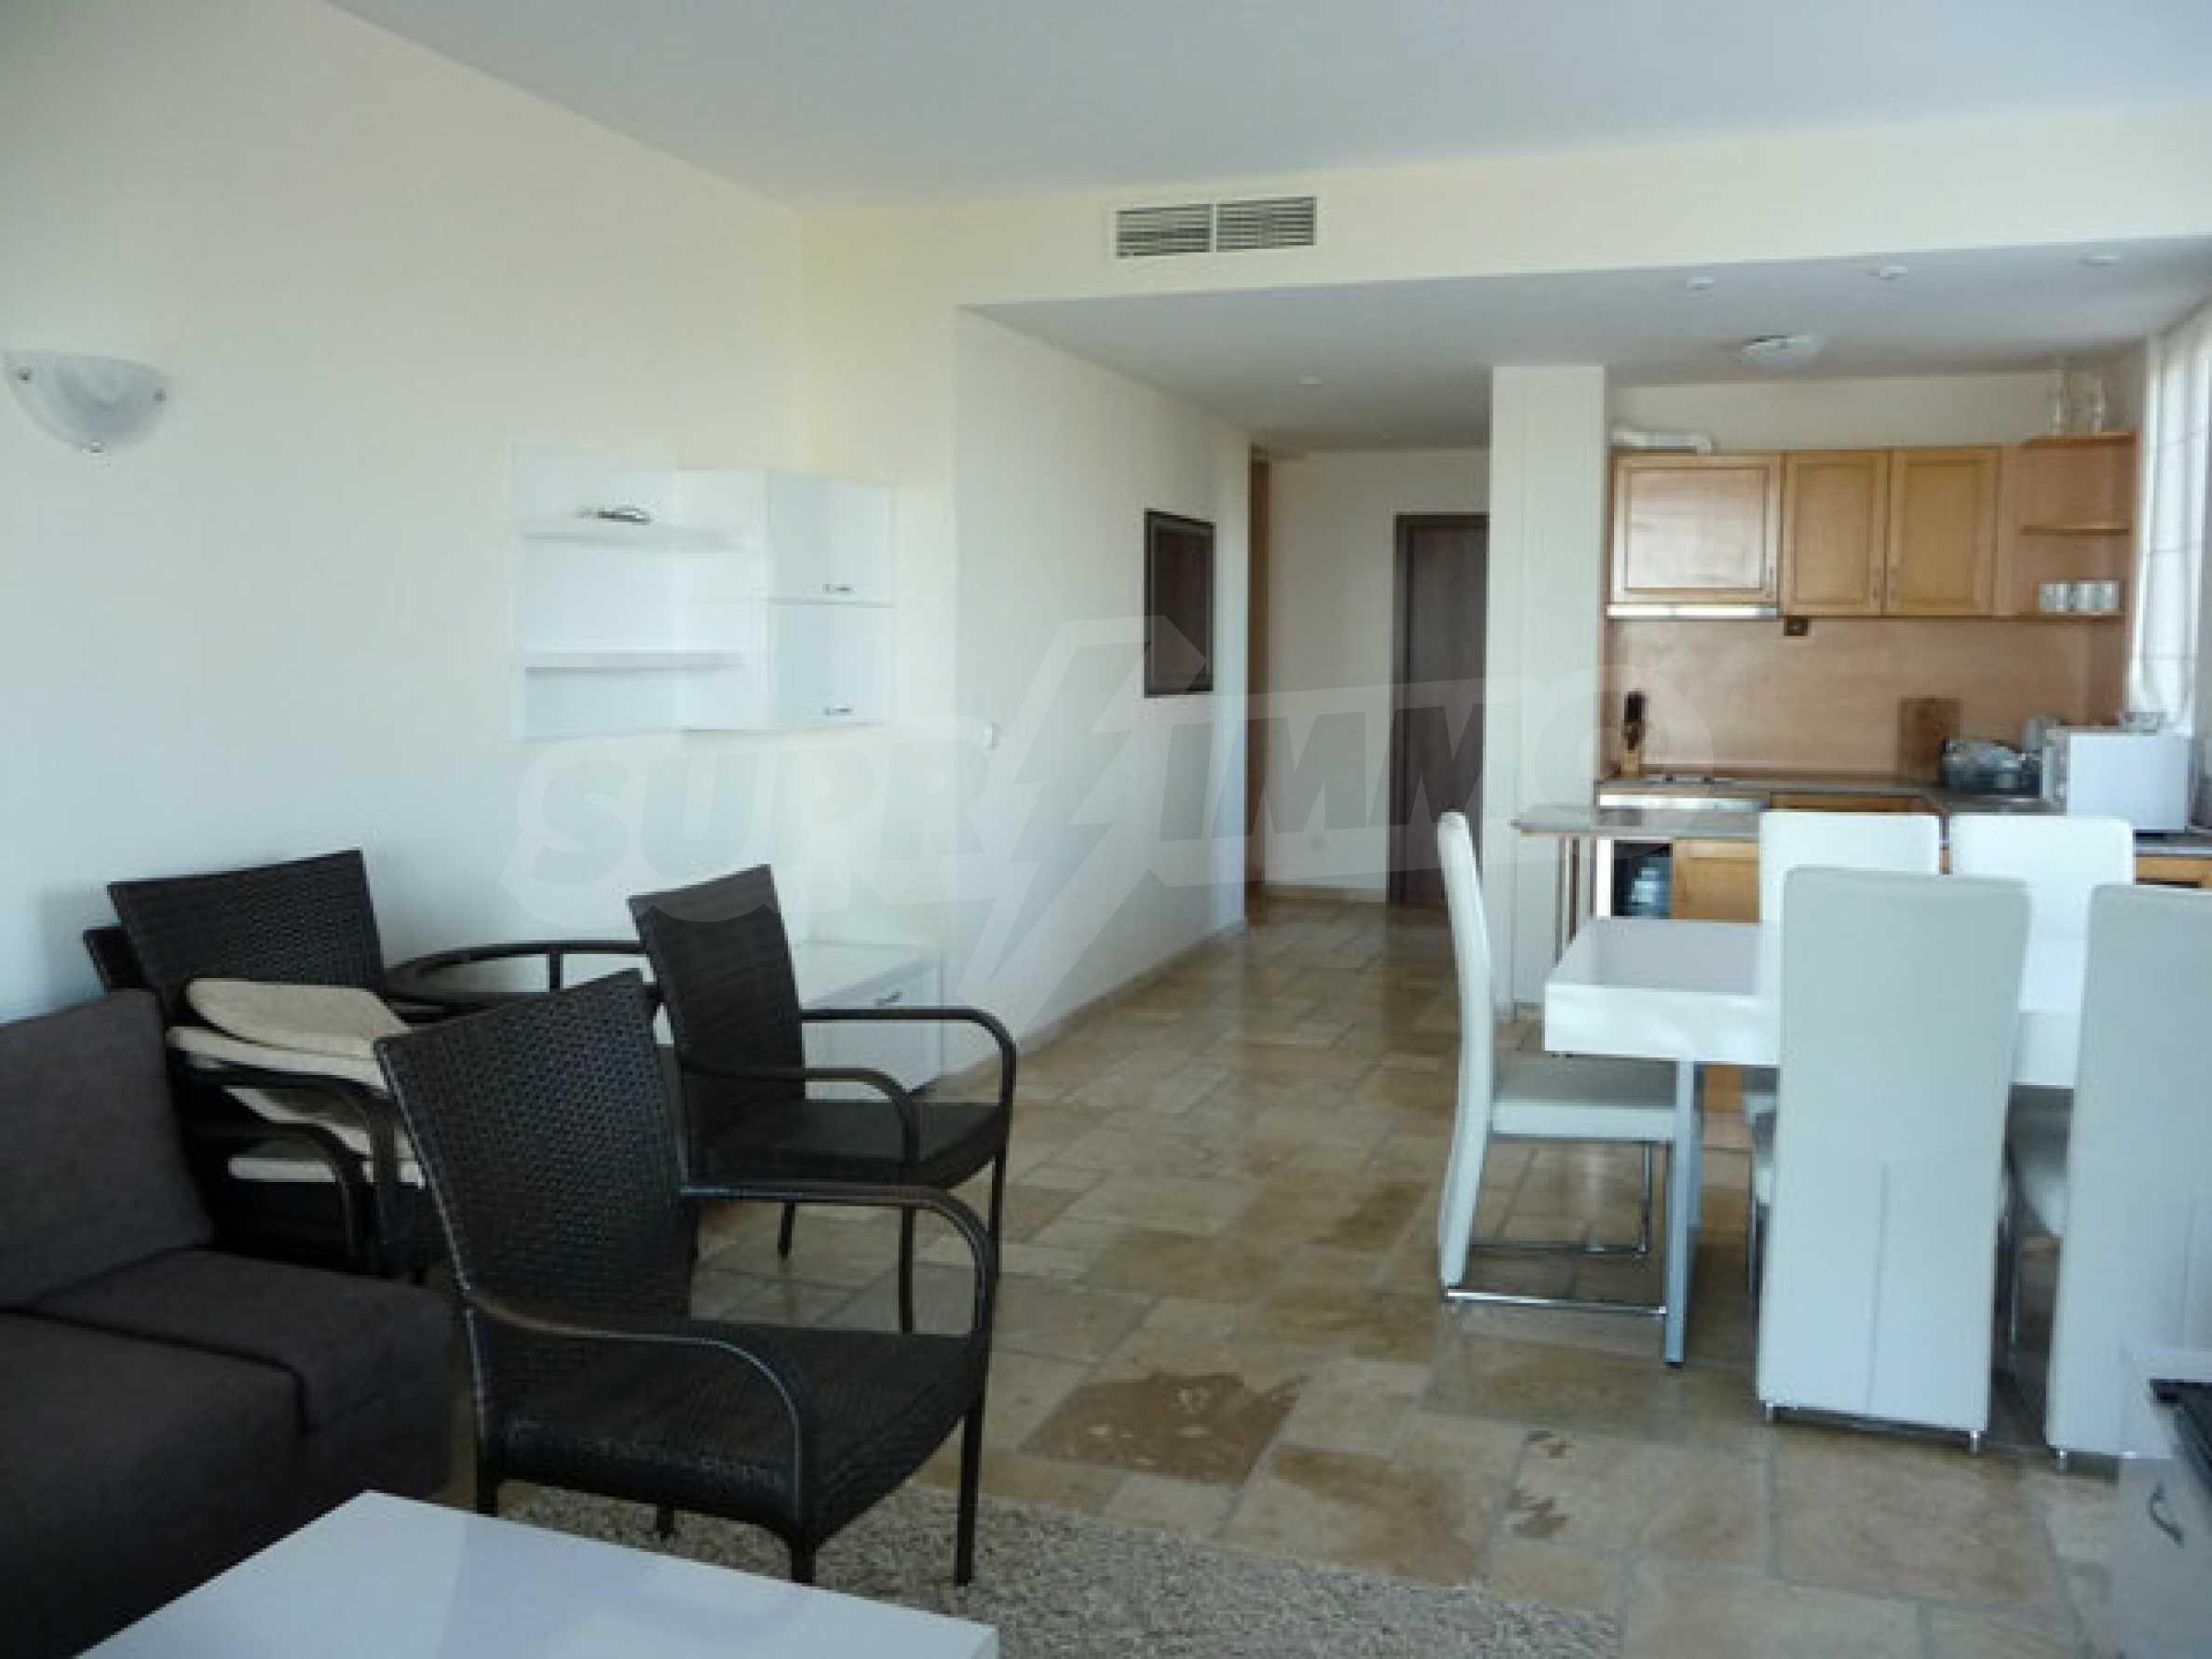 Large 2-bedroom apartment in Kaliakria complex 8